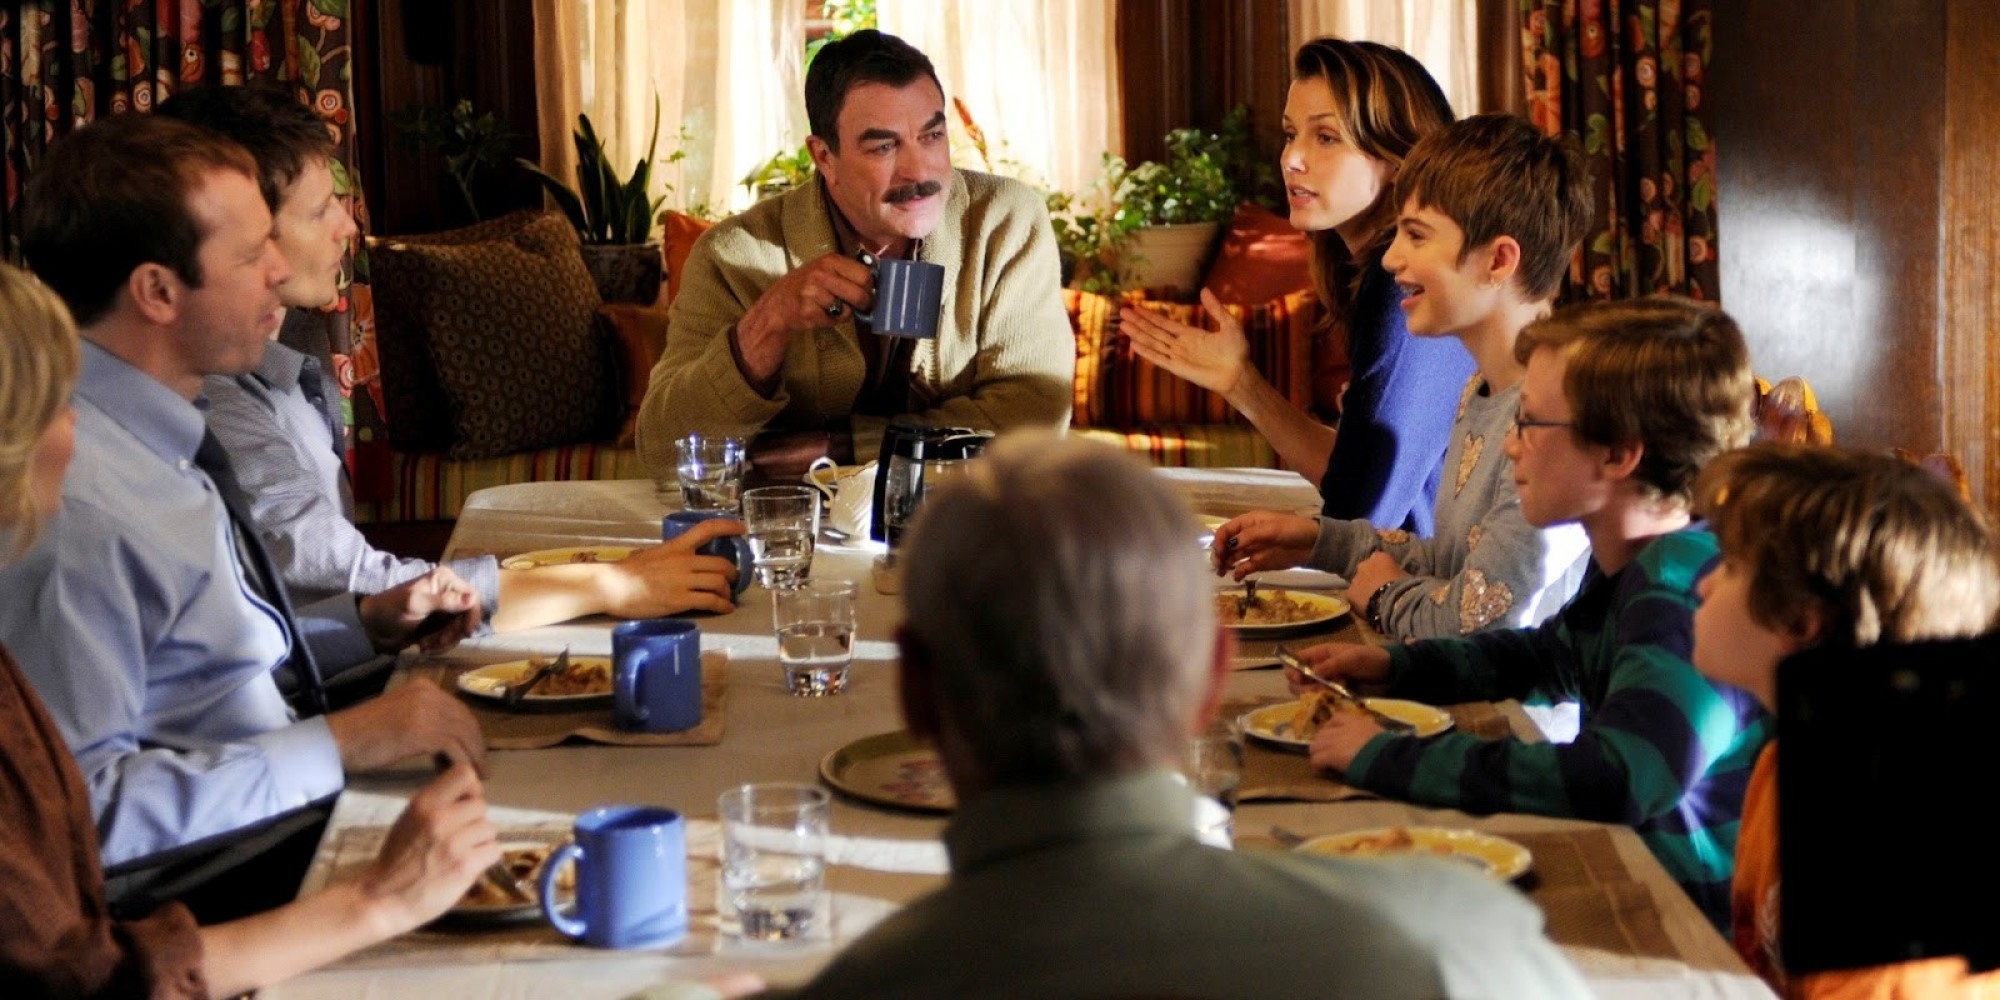 39 blue bloods 39 season 4 what it 39 s like at the dinner table for Table 9 movie